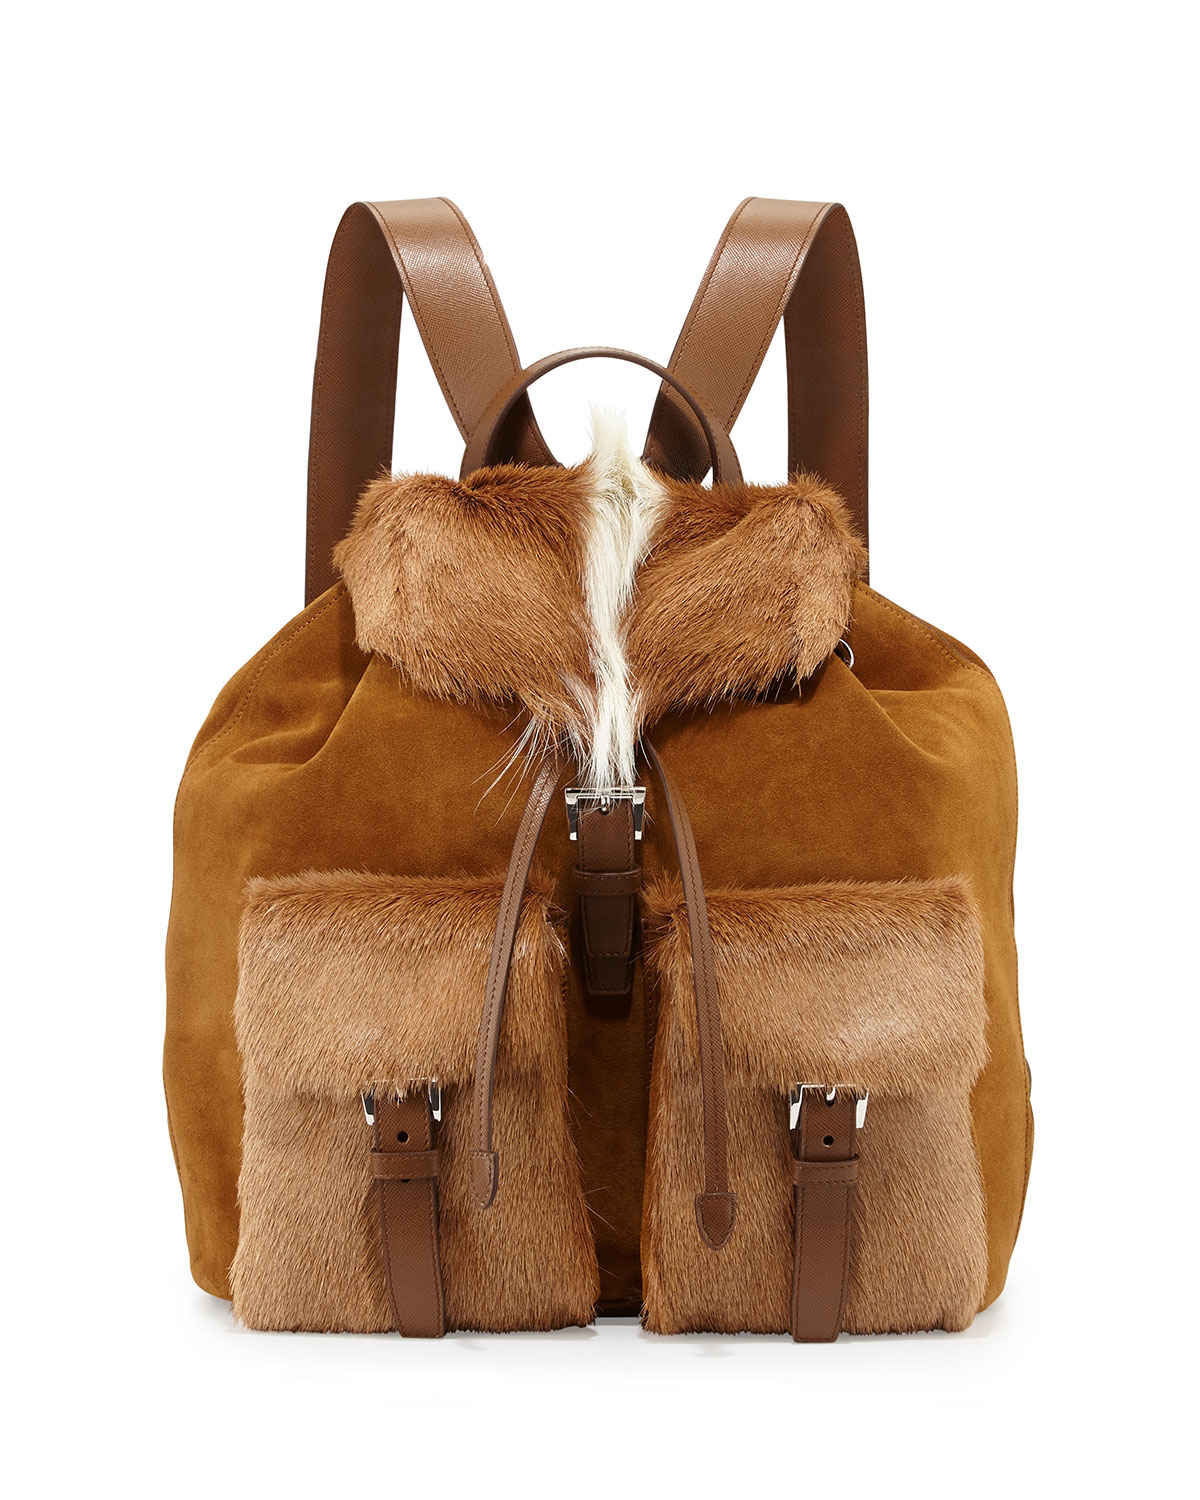 Prada Brown White Springbok Fur Suede Backpack Bag · Prada Black Soft  Calfskin ... 6d3a8549cd